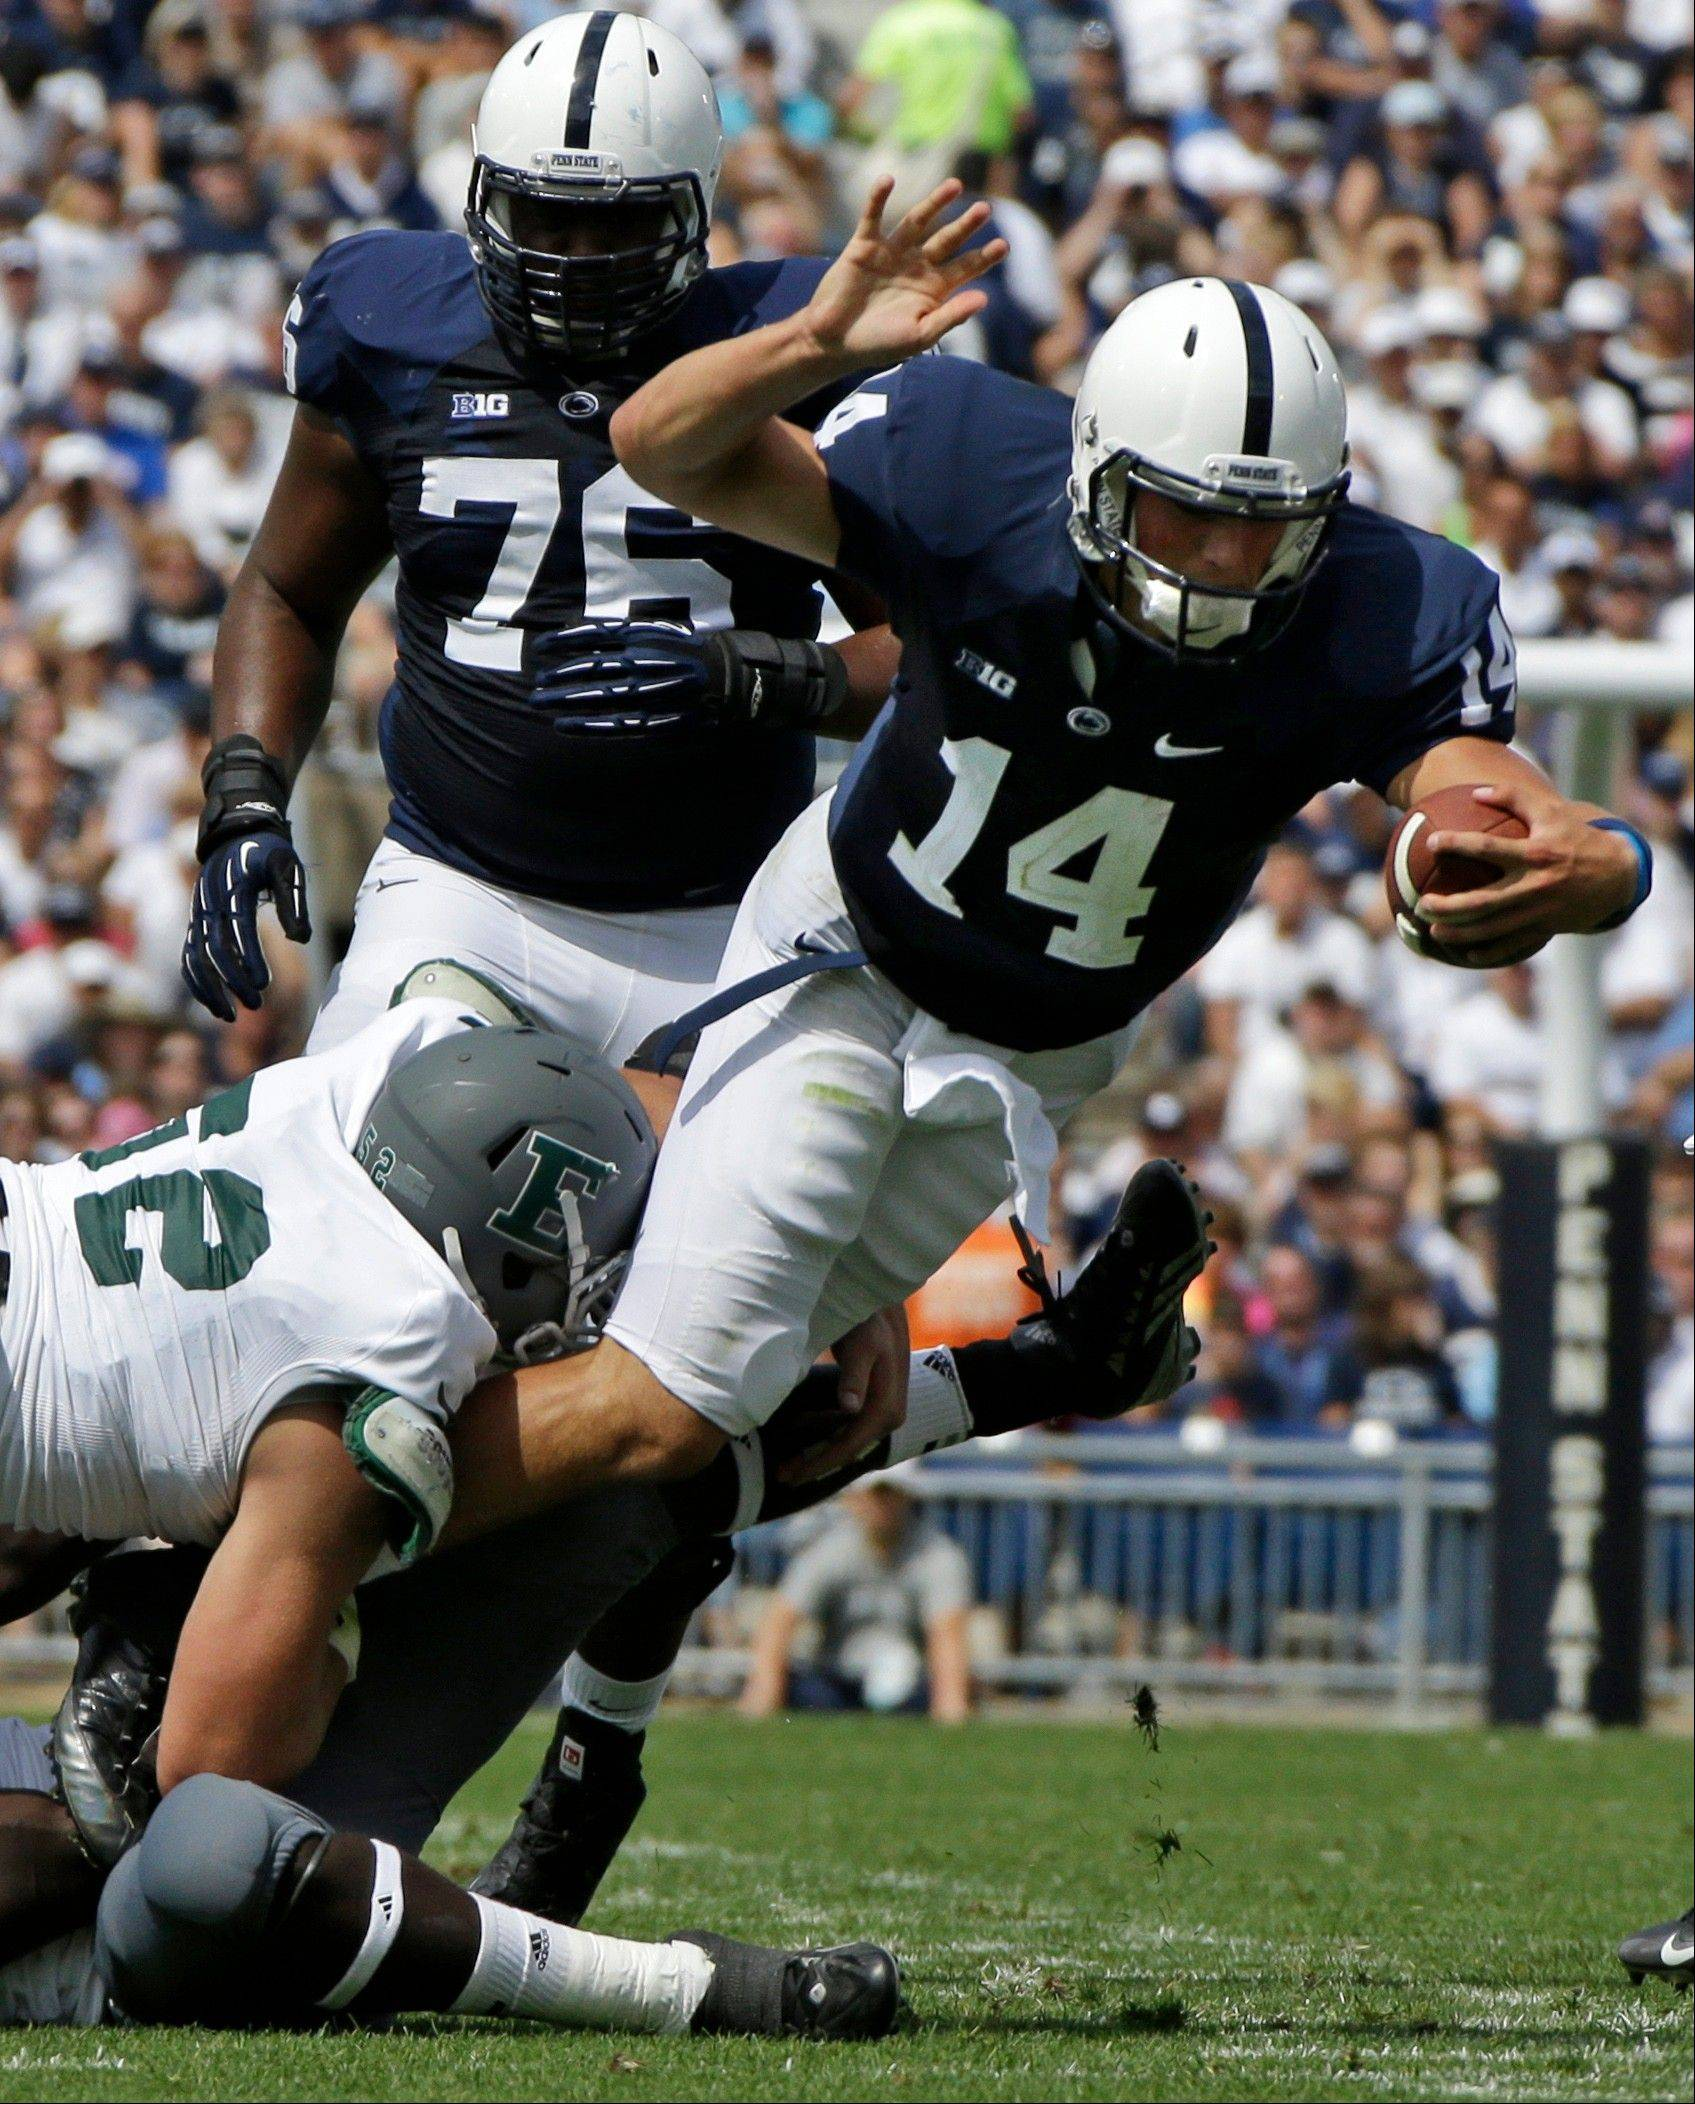 Penn State running back Zach Zwinak dives into the end zone to score on a two-yard run during the first quarter of Saturday�s game against Eastern Michigan in State College, Pa.